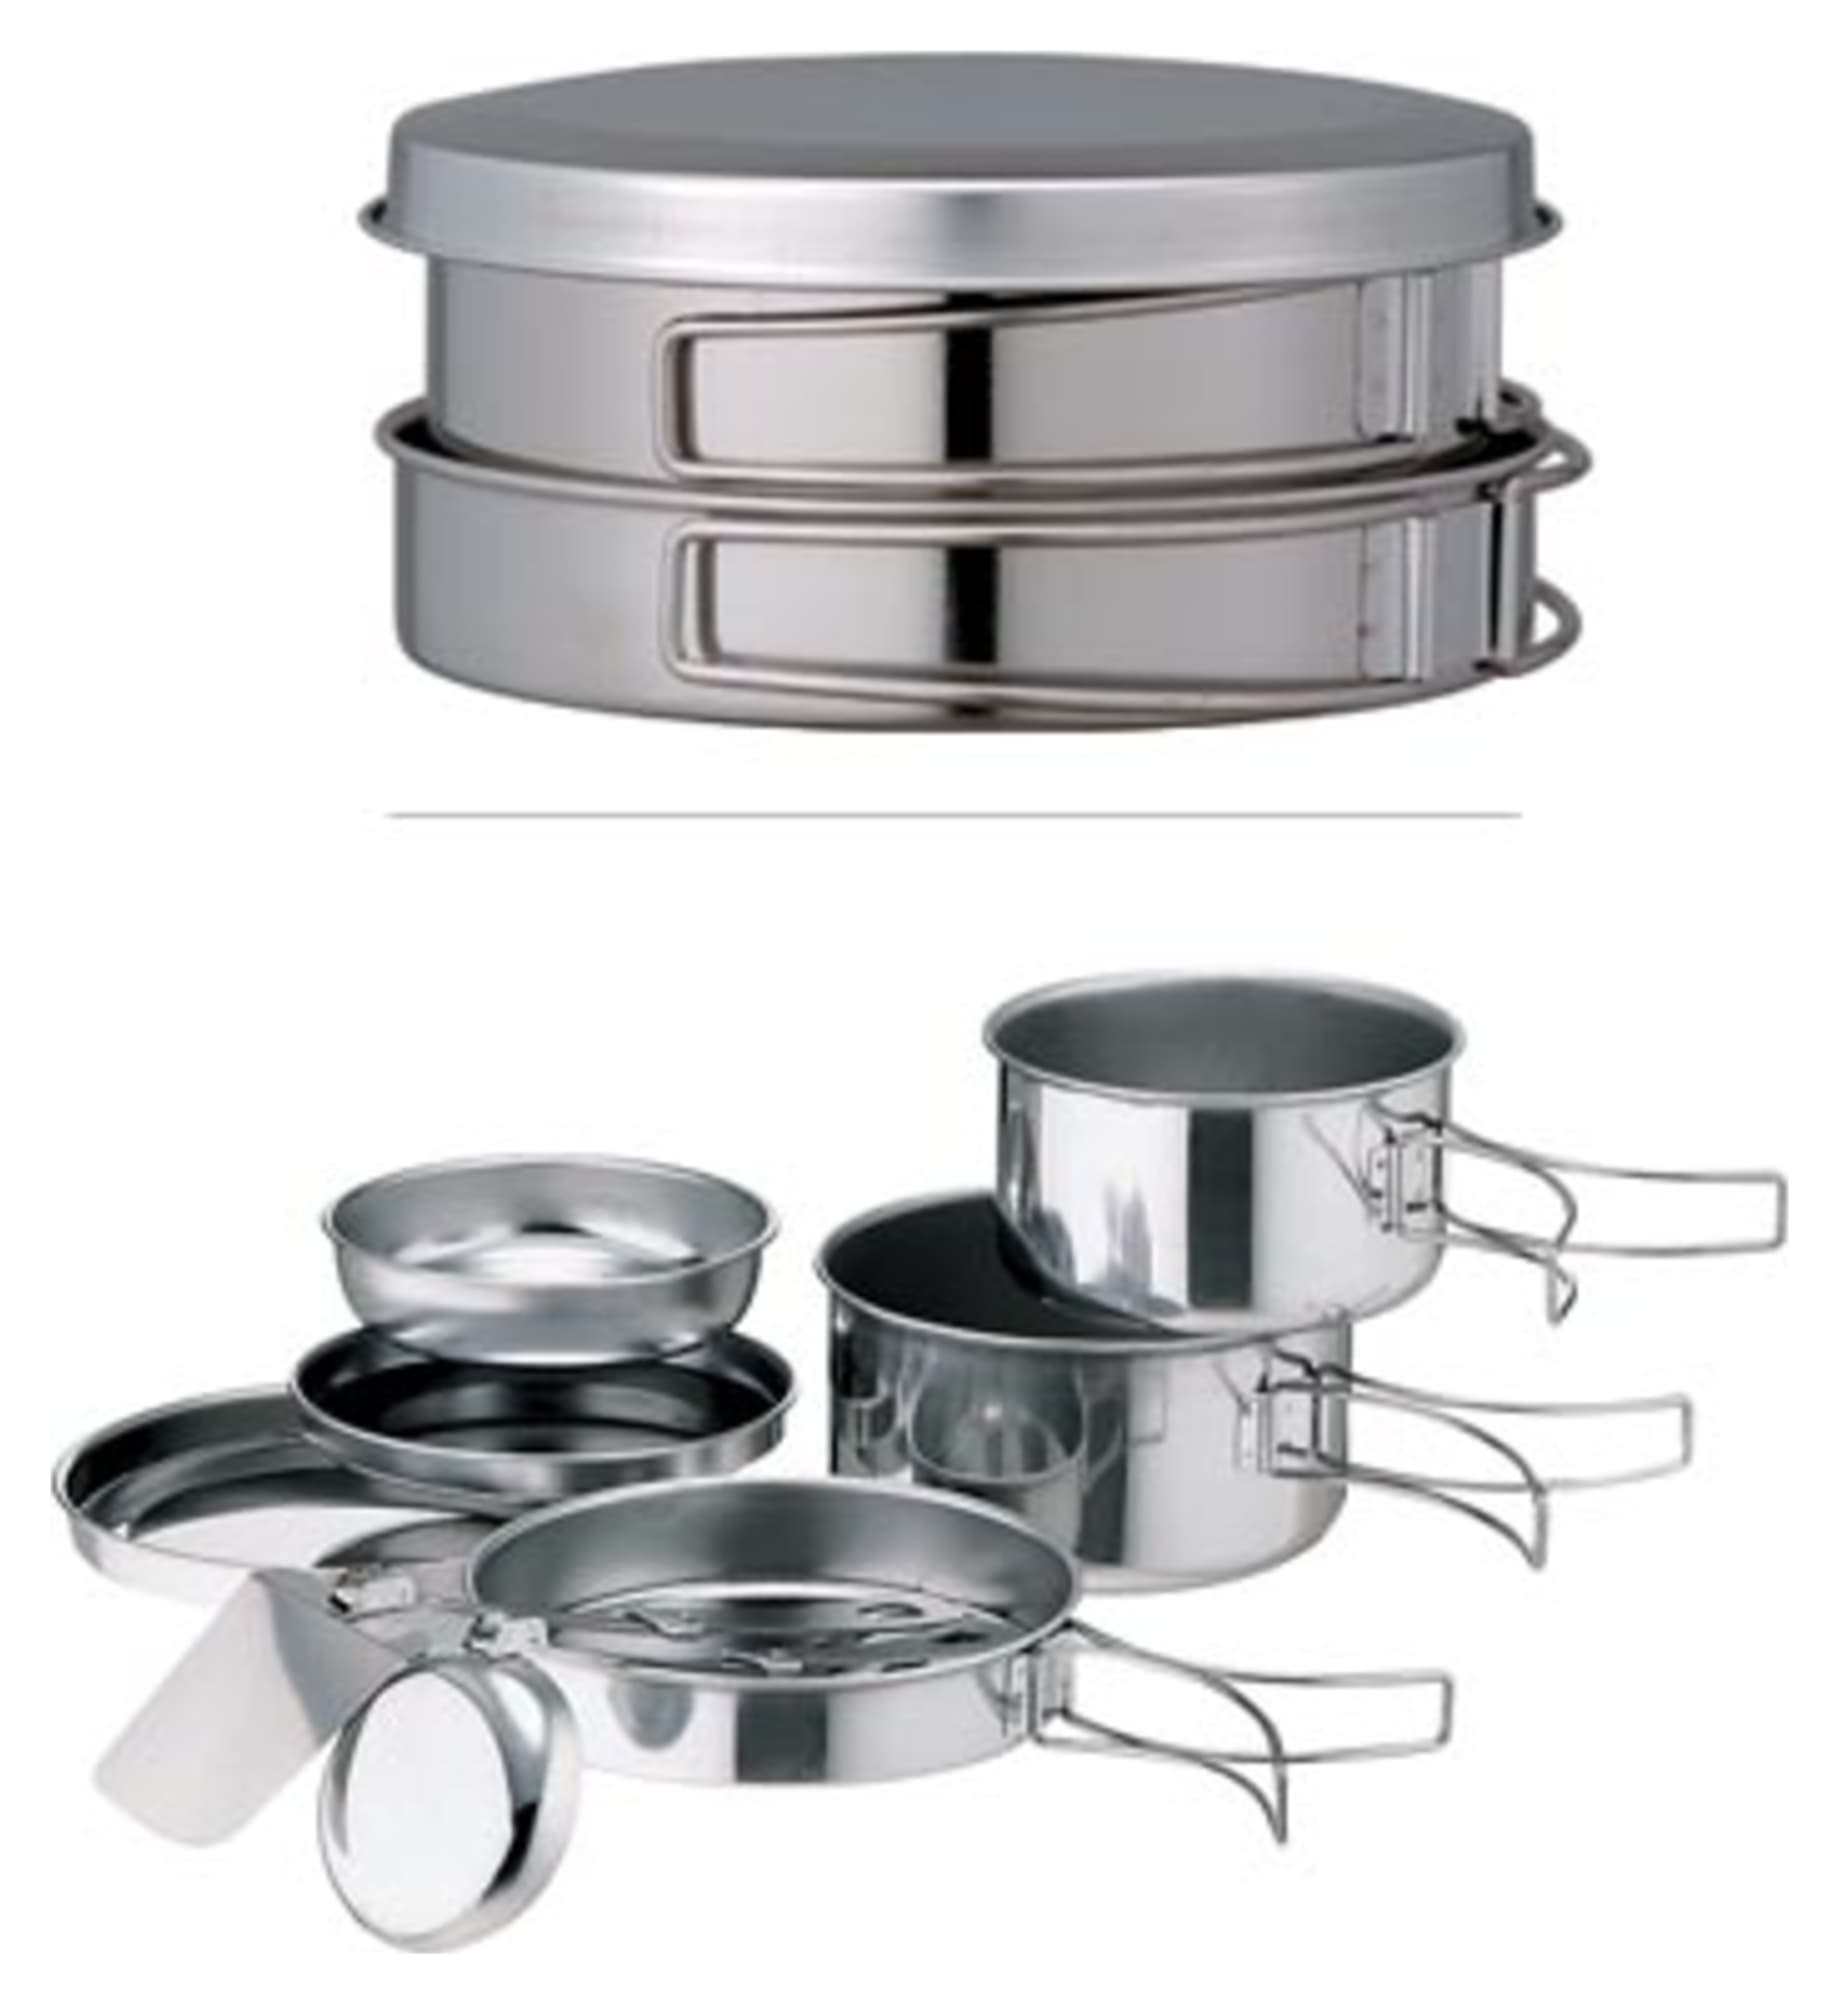 Cooker For Snowmobile ~ Snow peak personal cooker no